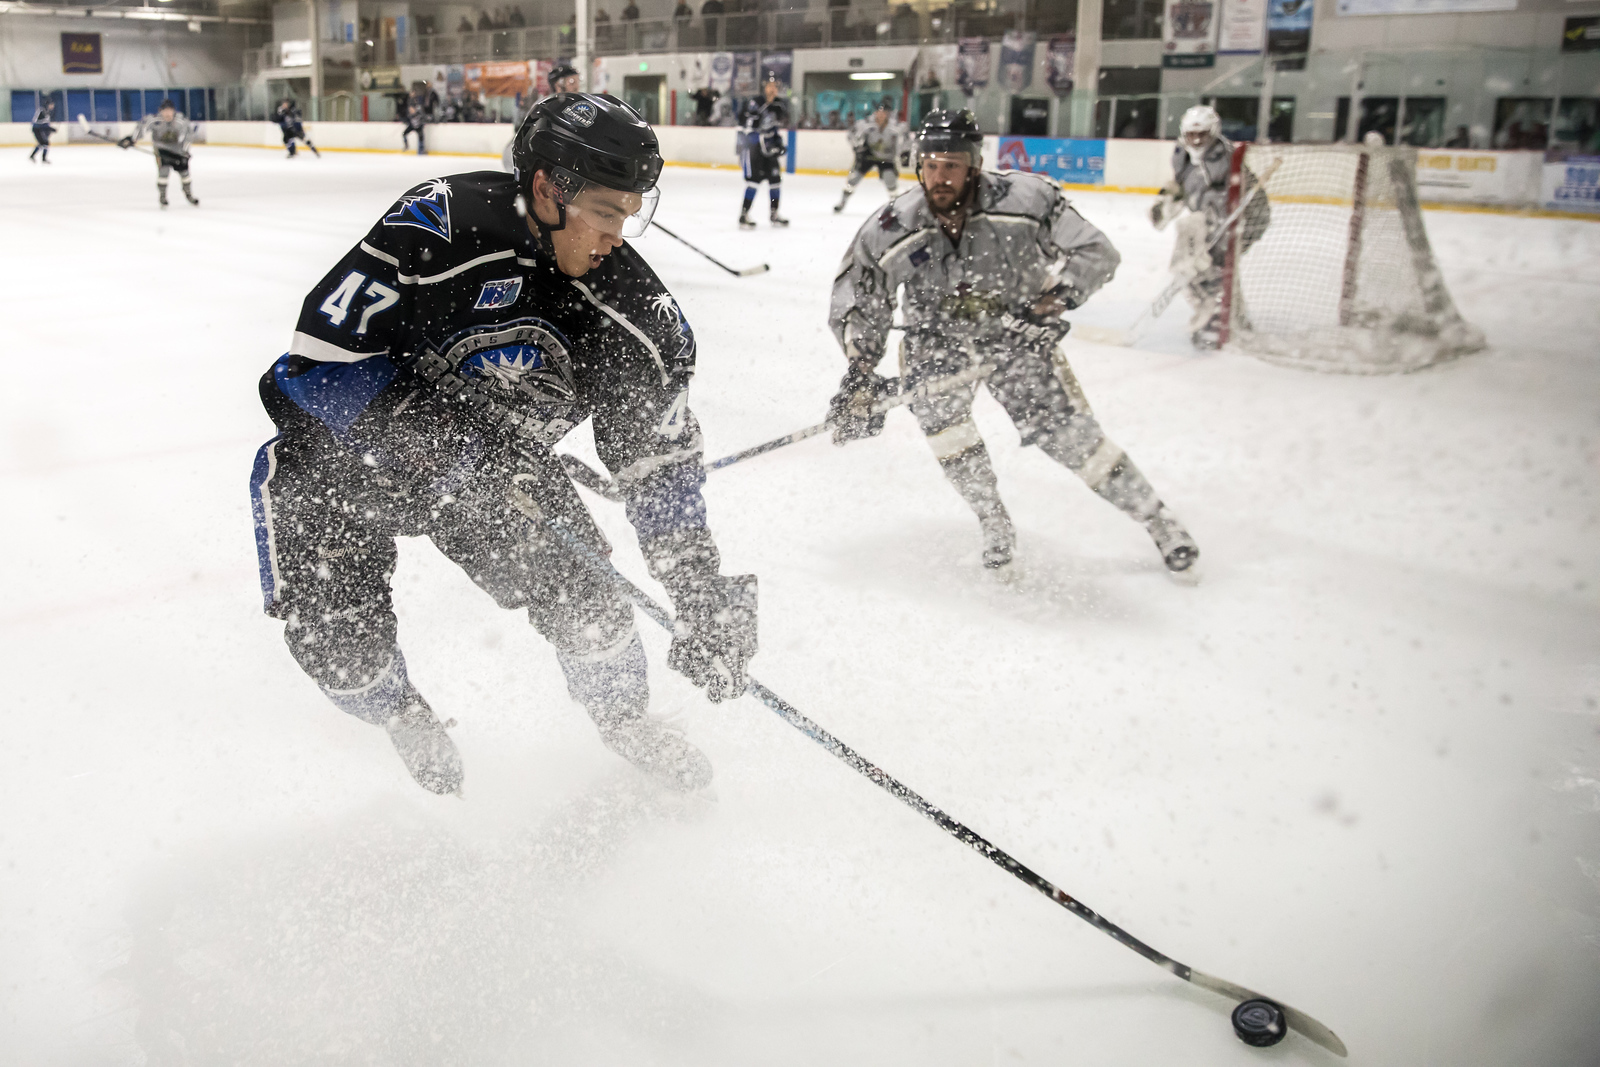 Forward Kiril Markevich of the Long Beach Bombers throwing some ice fending off a souther organ defenseman @lbbombershockey @pt_gazettessports